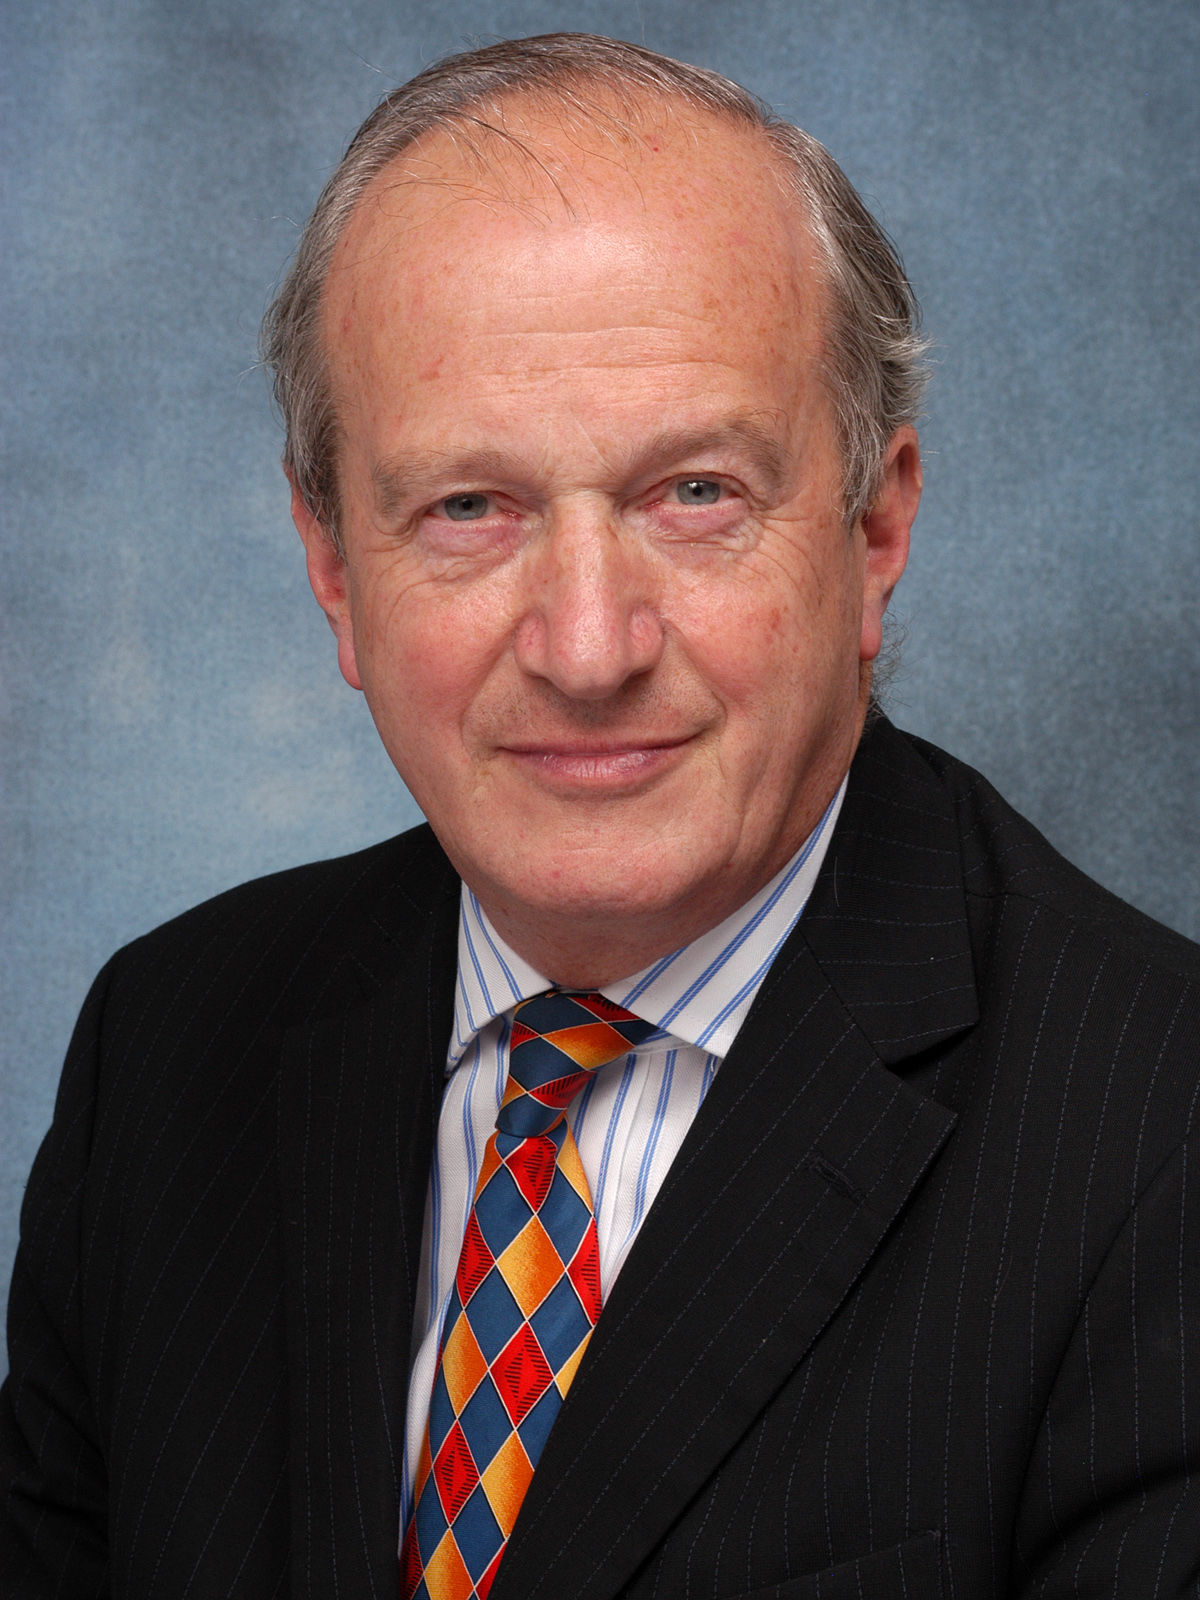 The Rt. Hon. the Lord Hunt of Wirral MBE